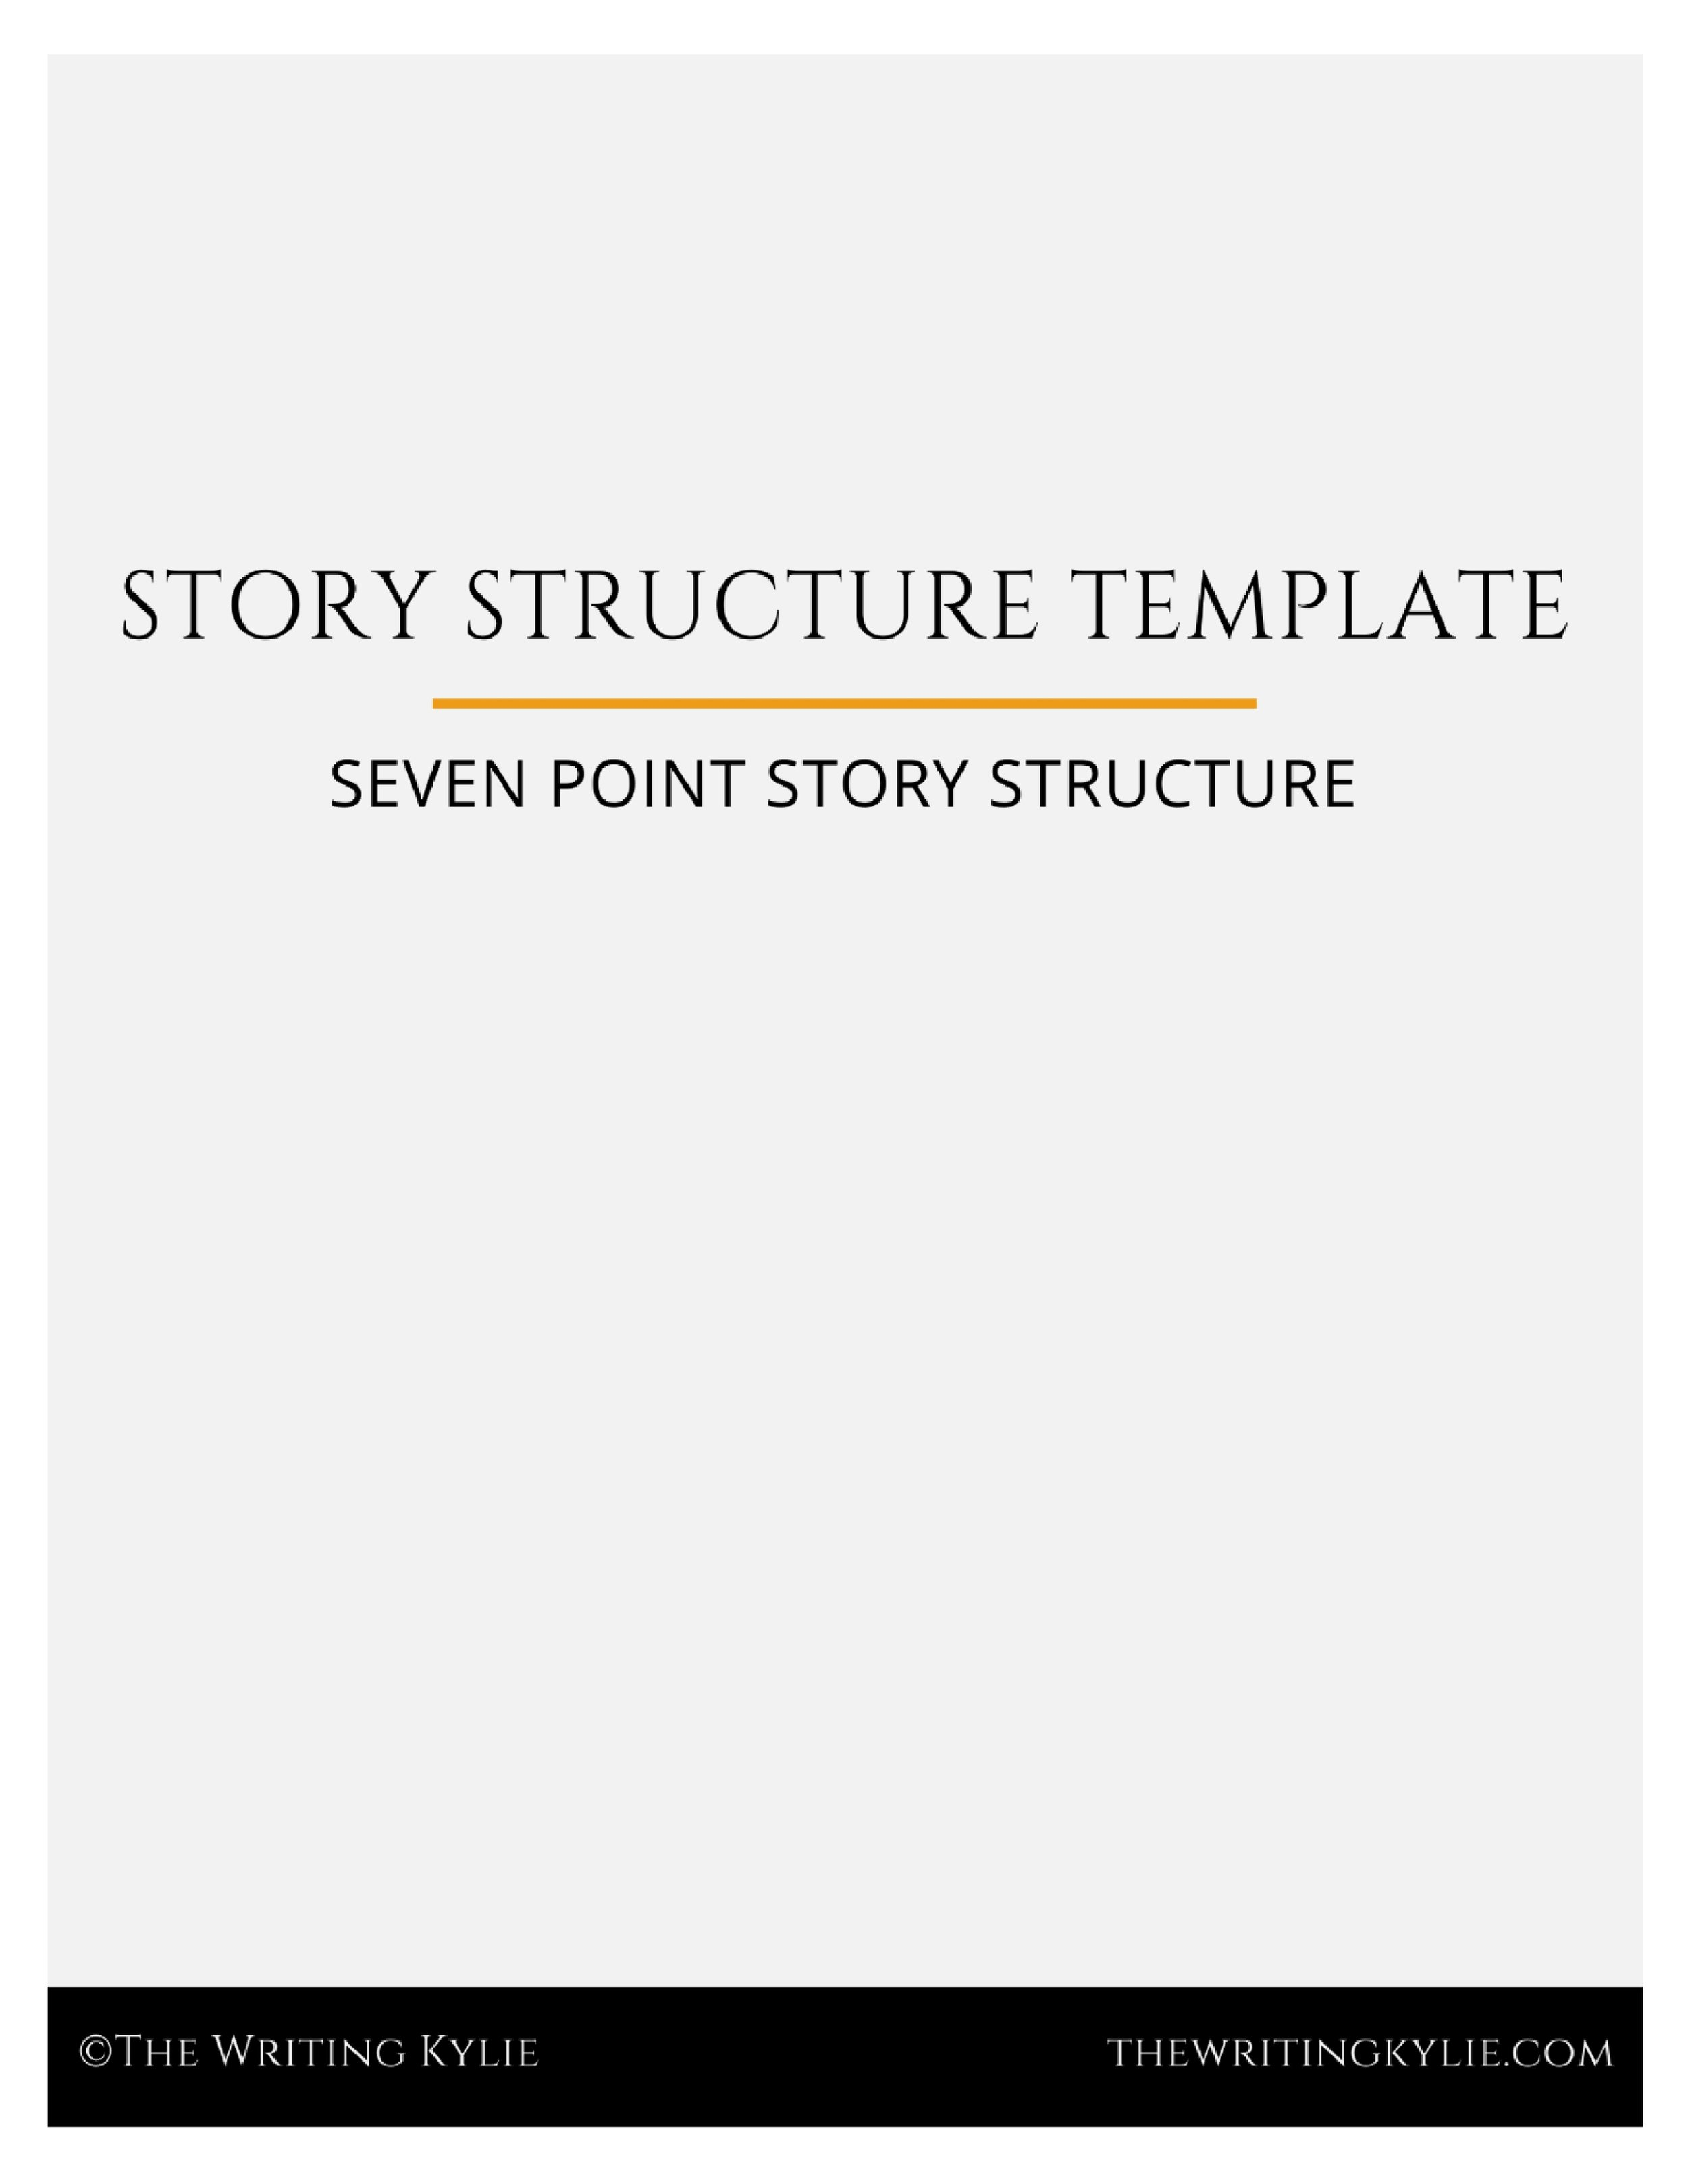 Download the  FREE Seven Point Story Structure Template!